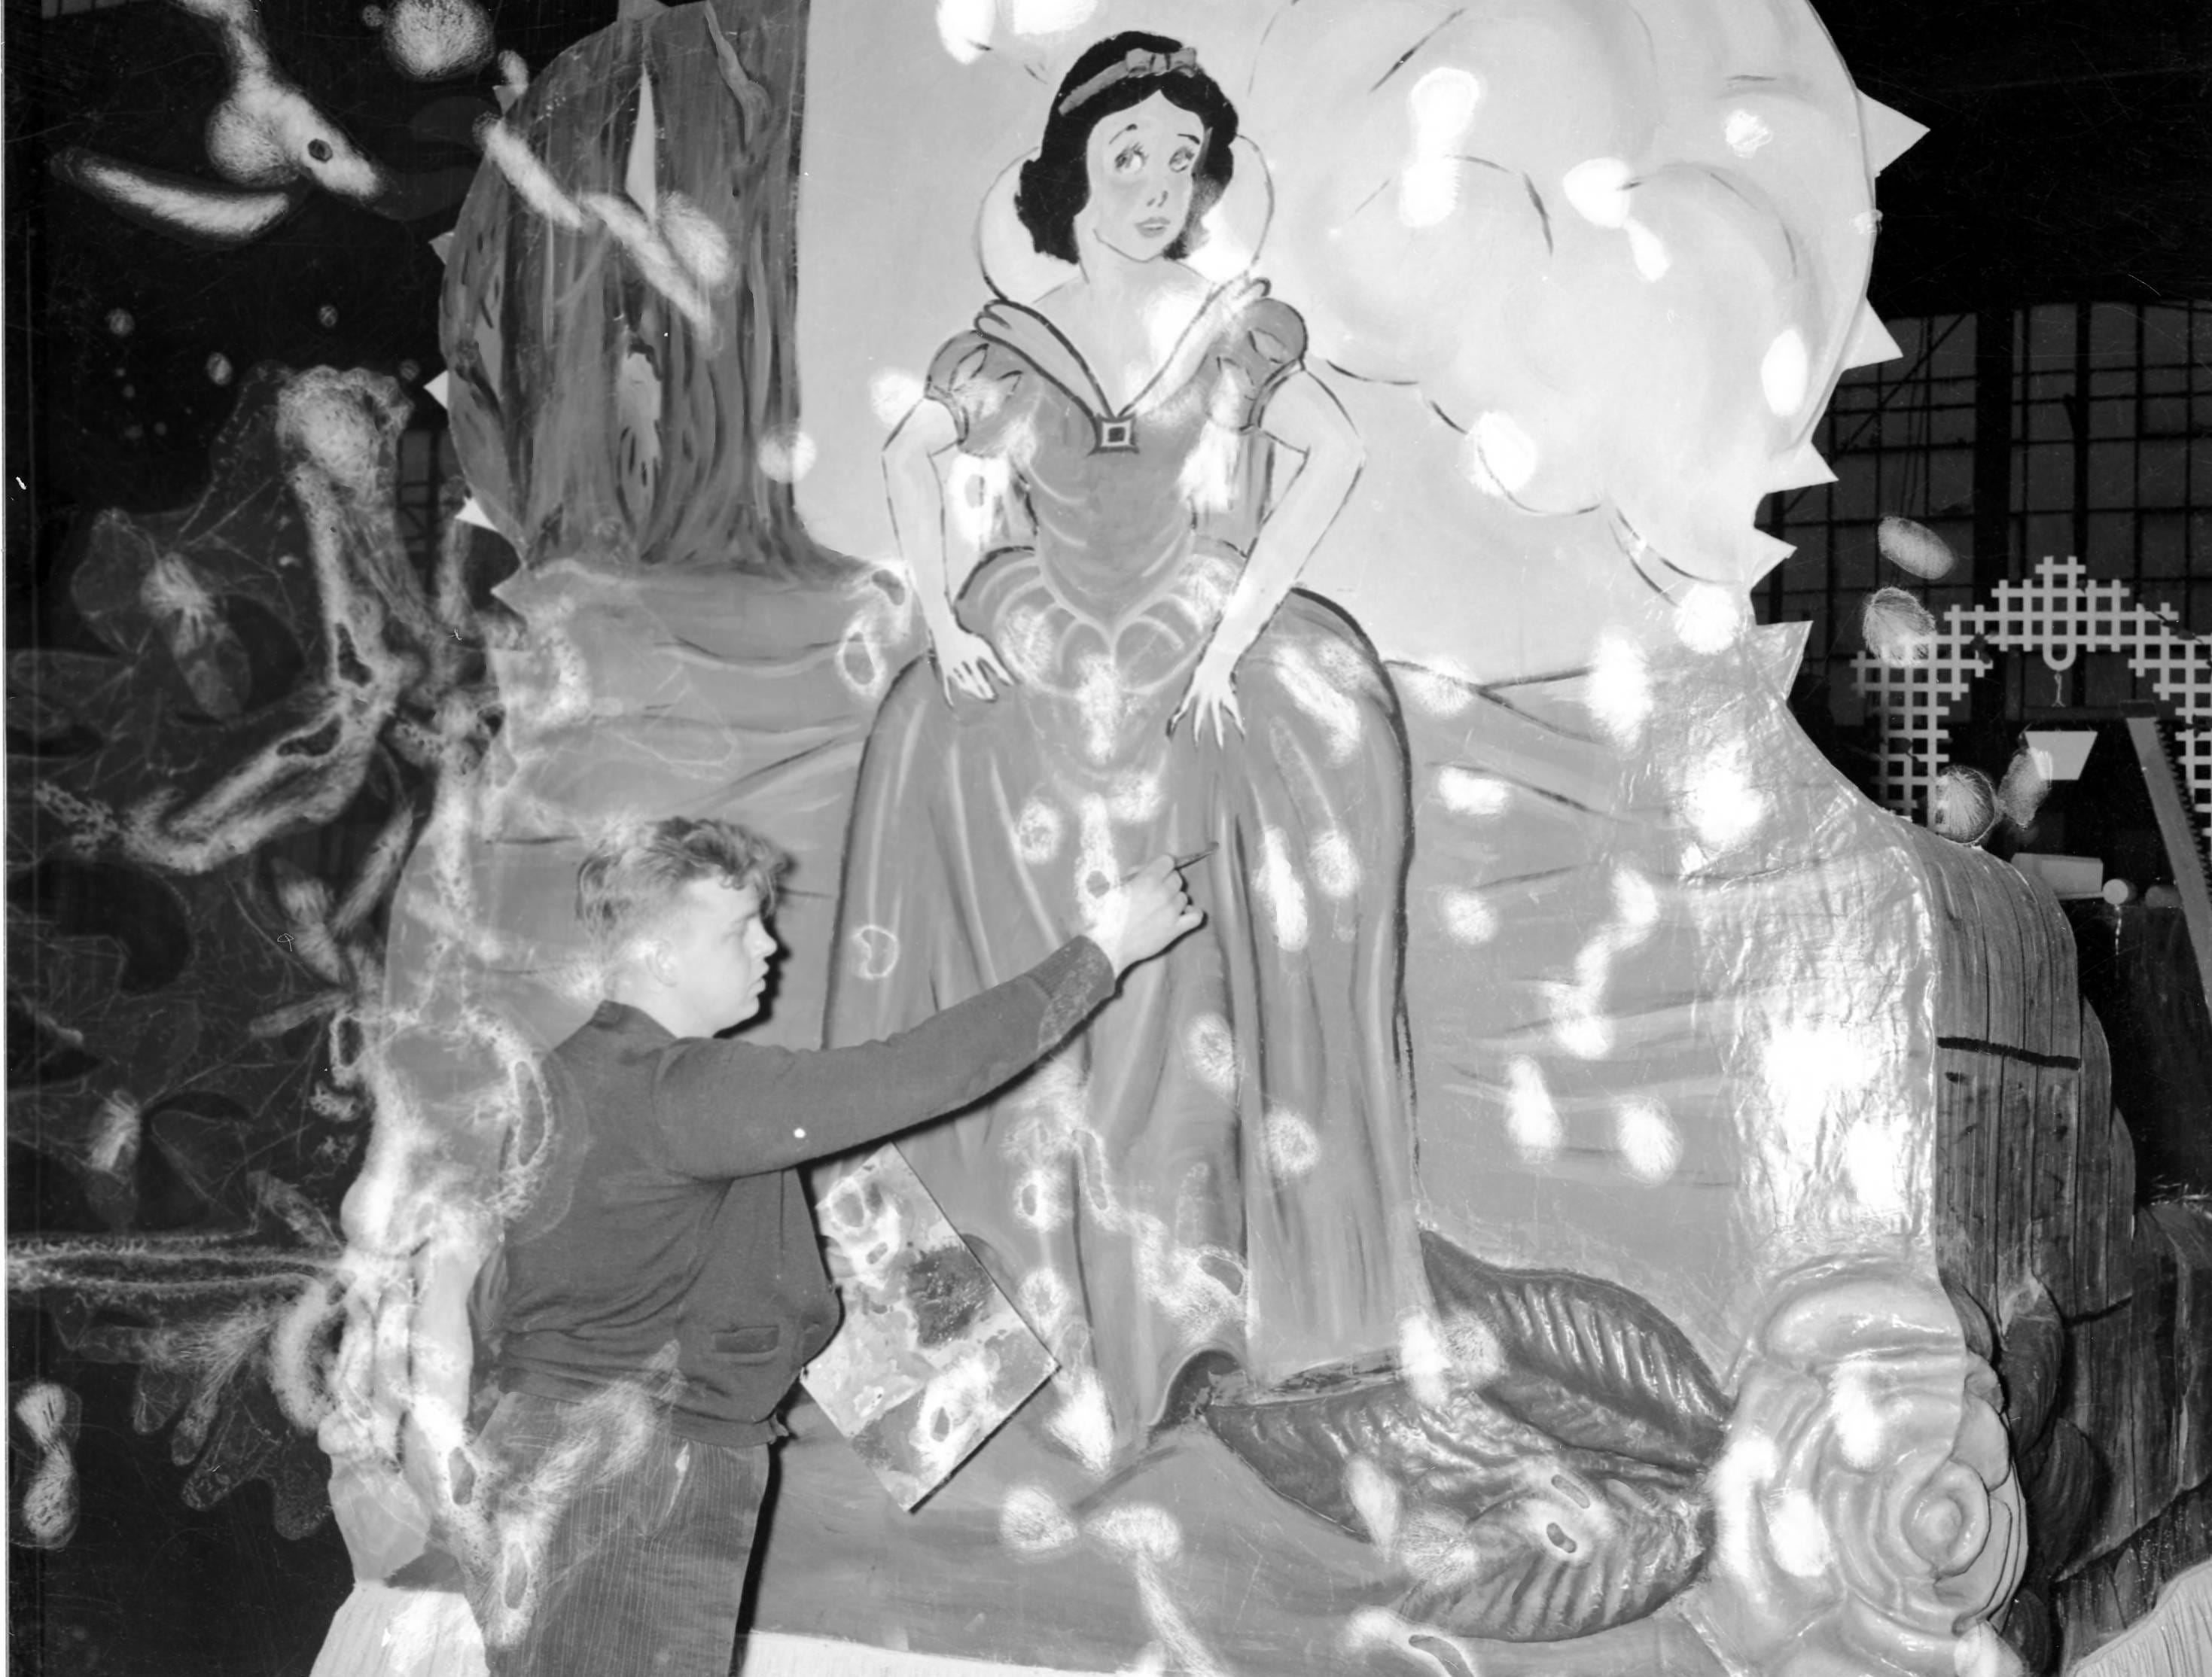 Man putting the final touches on float with Snow White for the WPA Christmas parade in 1939